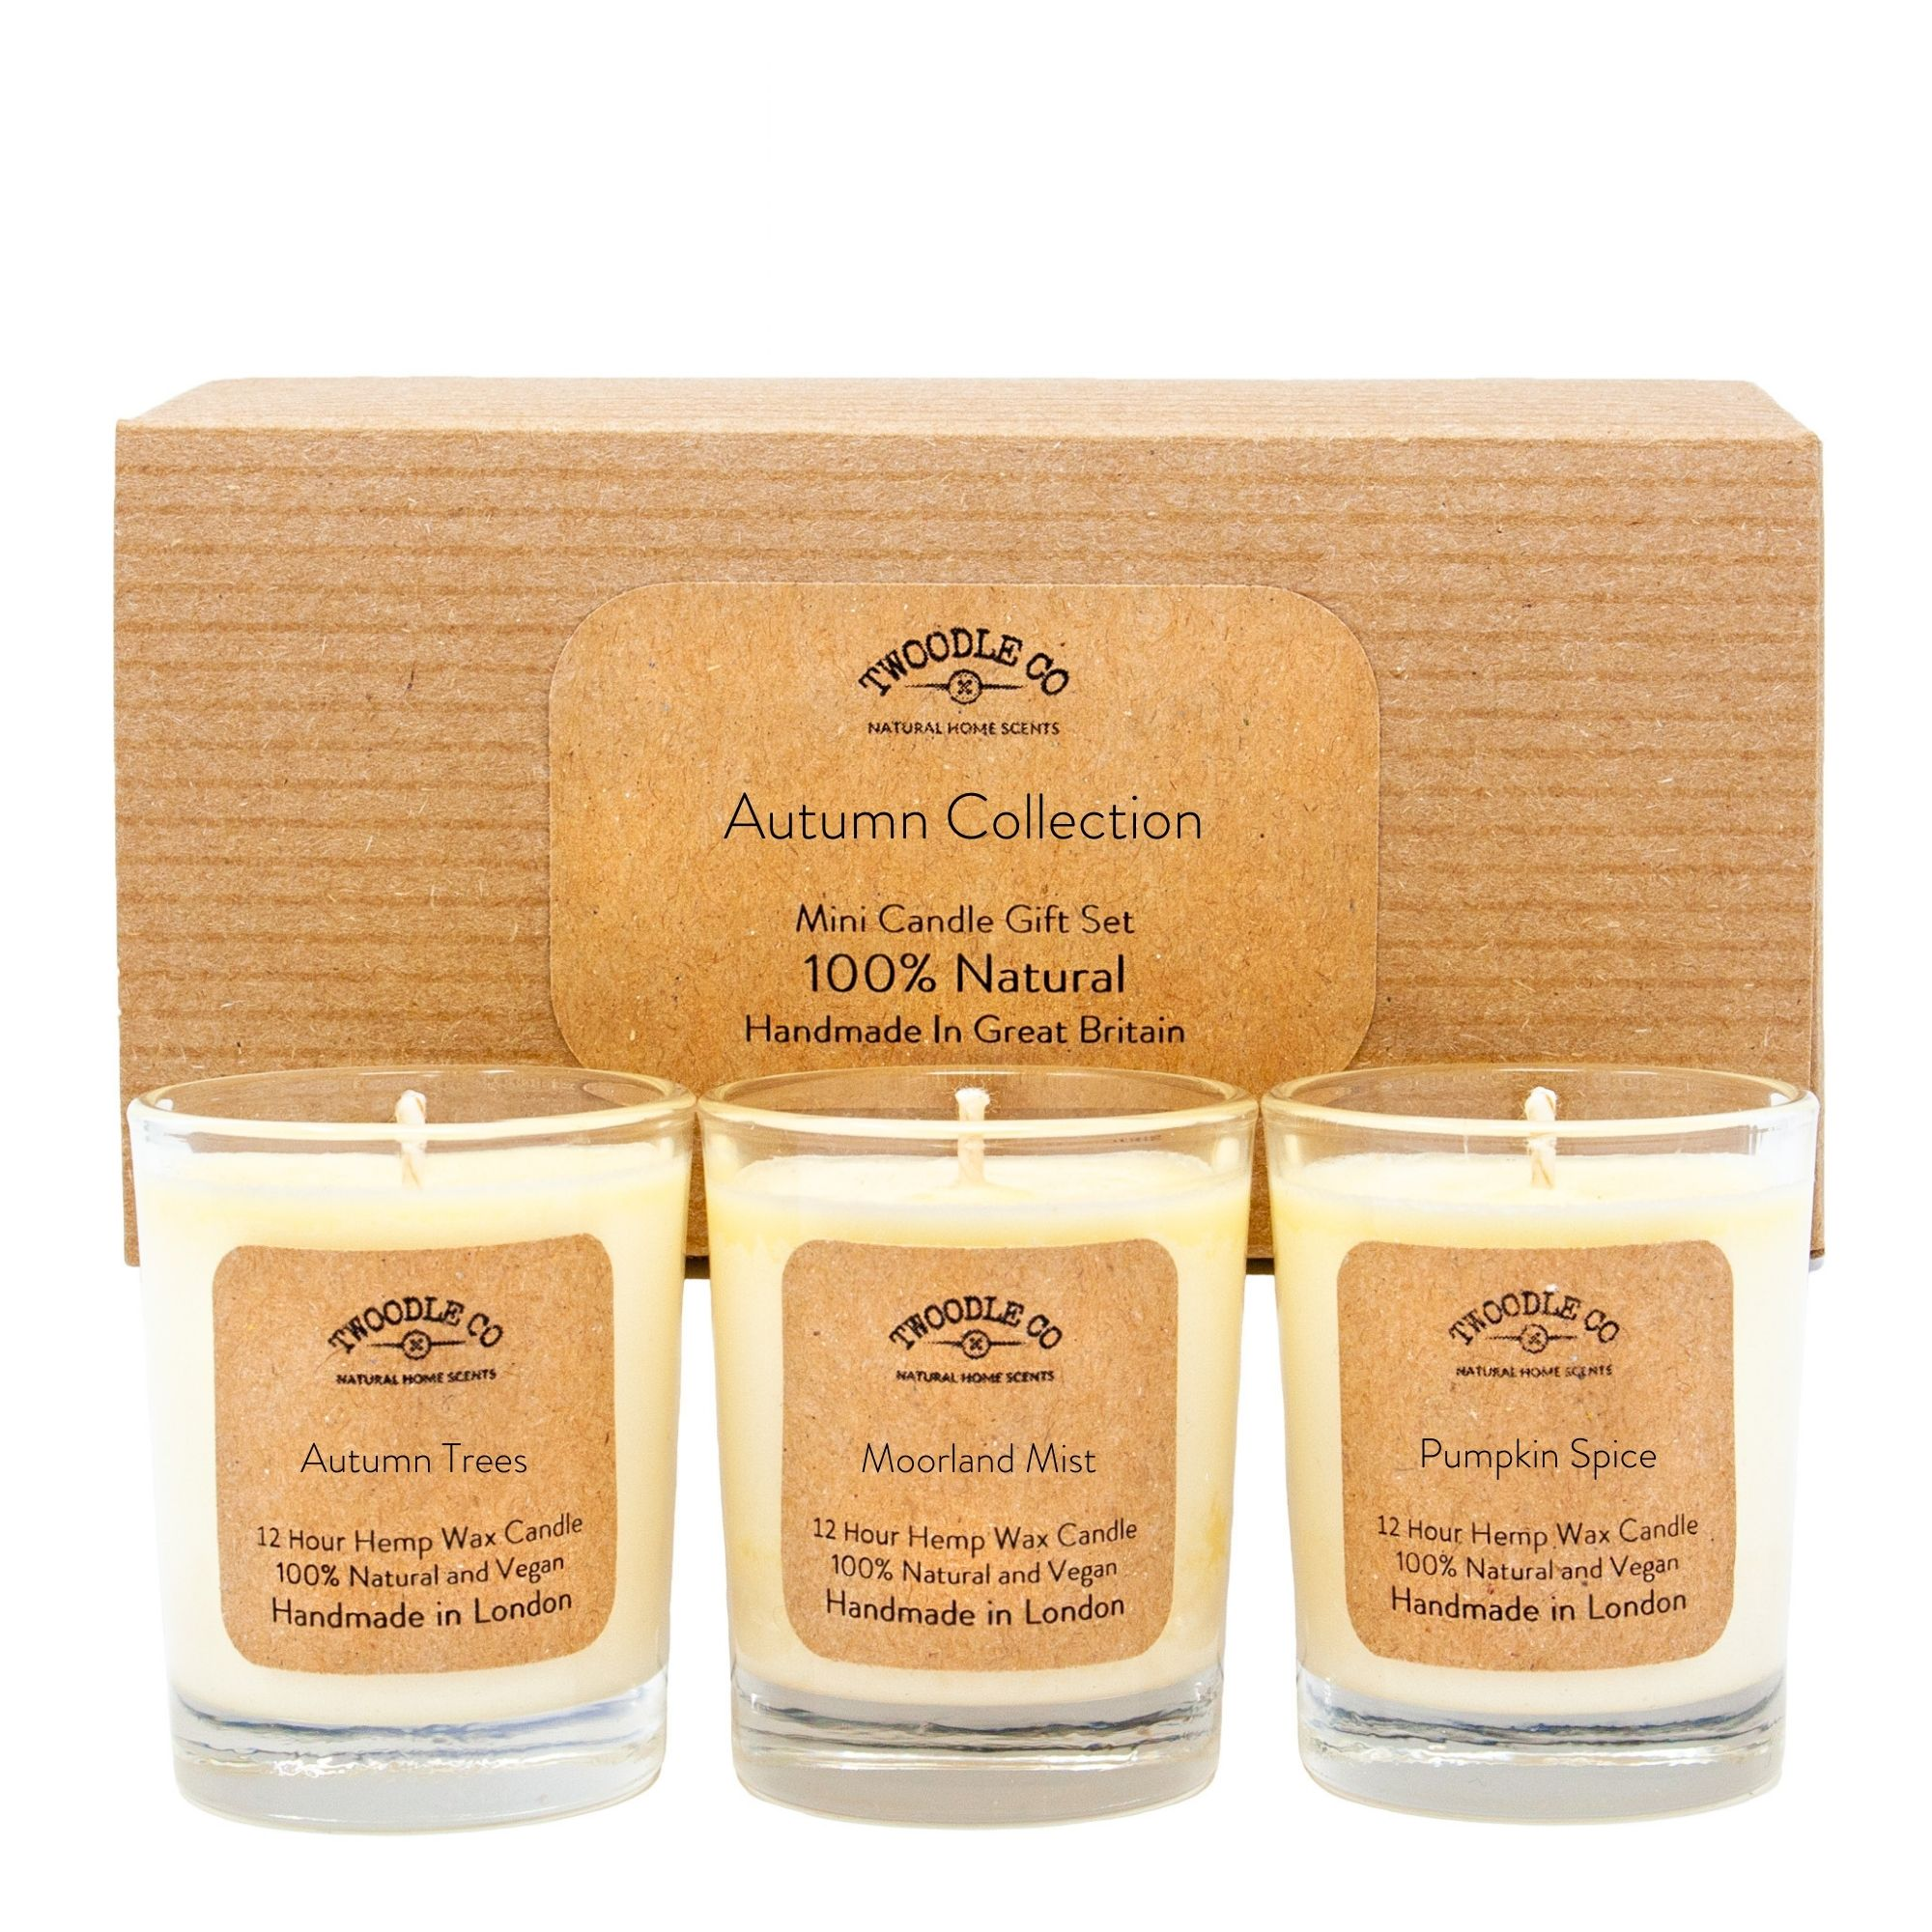 Autumn Collection Mini triple candle Gift Set by twoodle co natural home scents